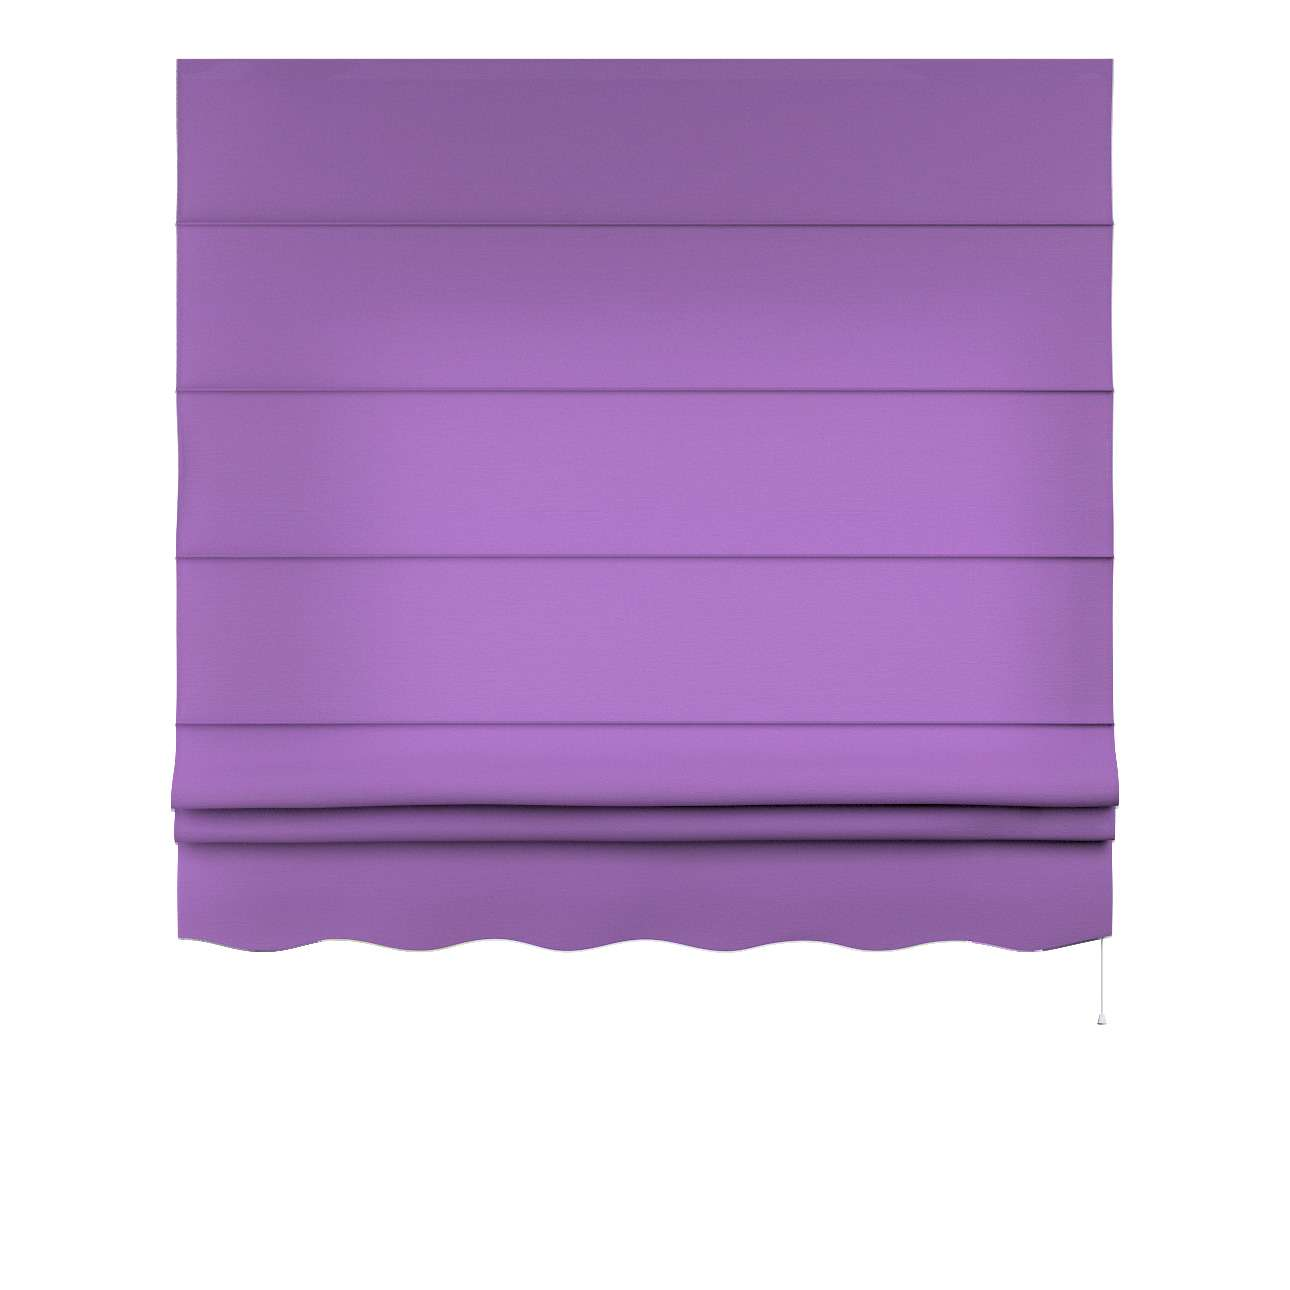 Florence roman blind  80 x 170 cm (31.5 x 67 inch) in collection Loneta , fabric: 133-19